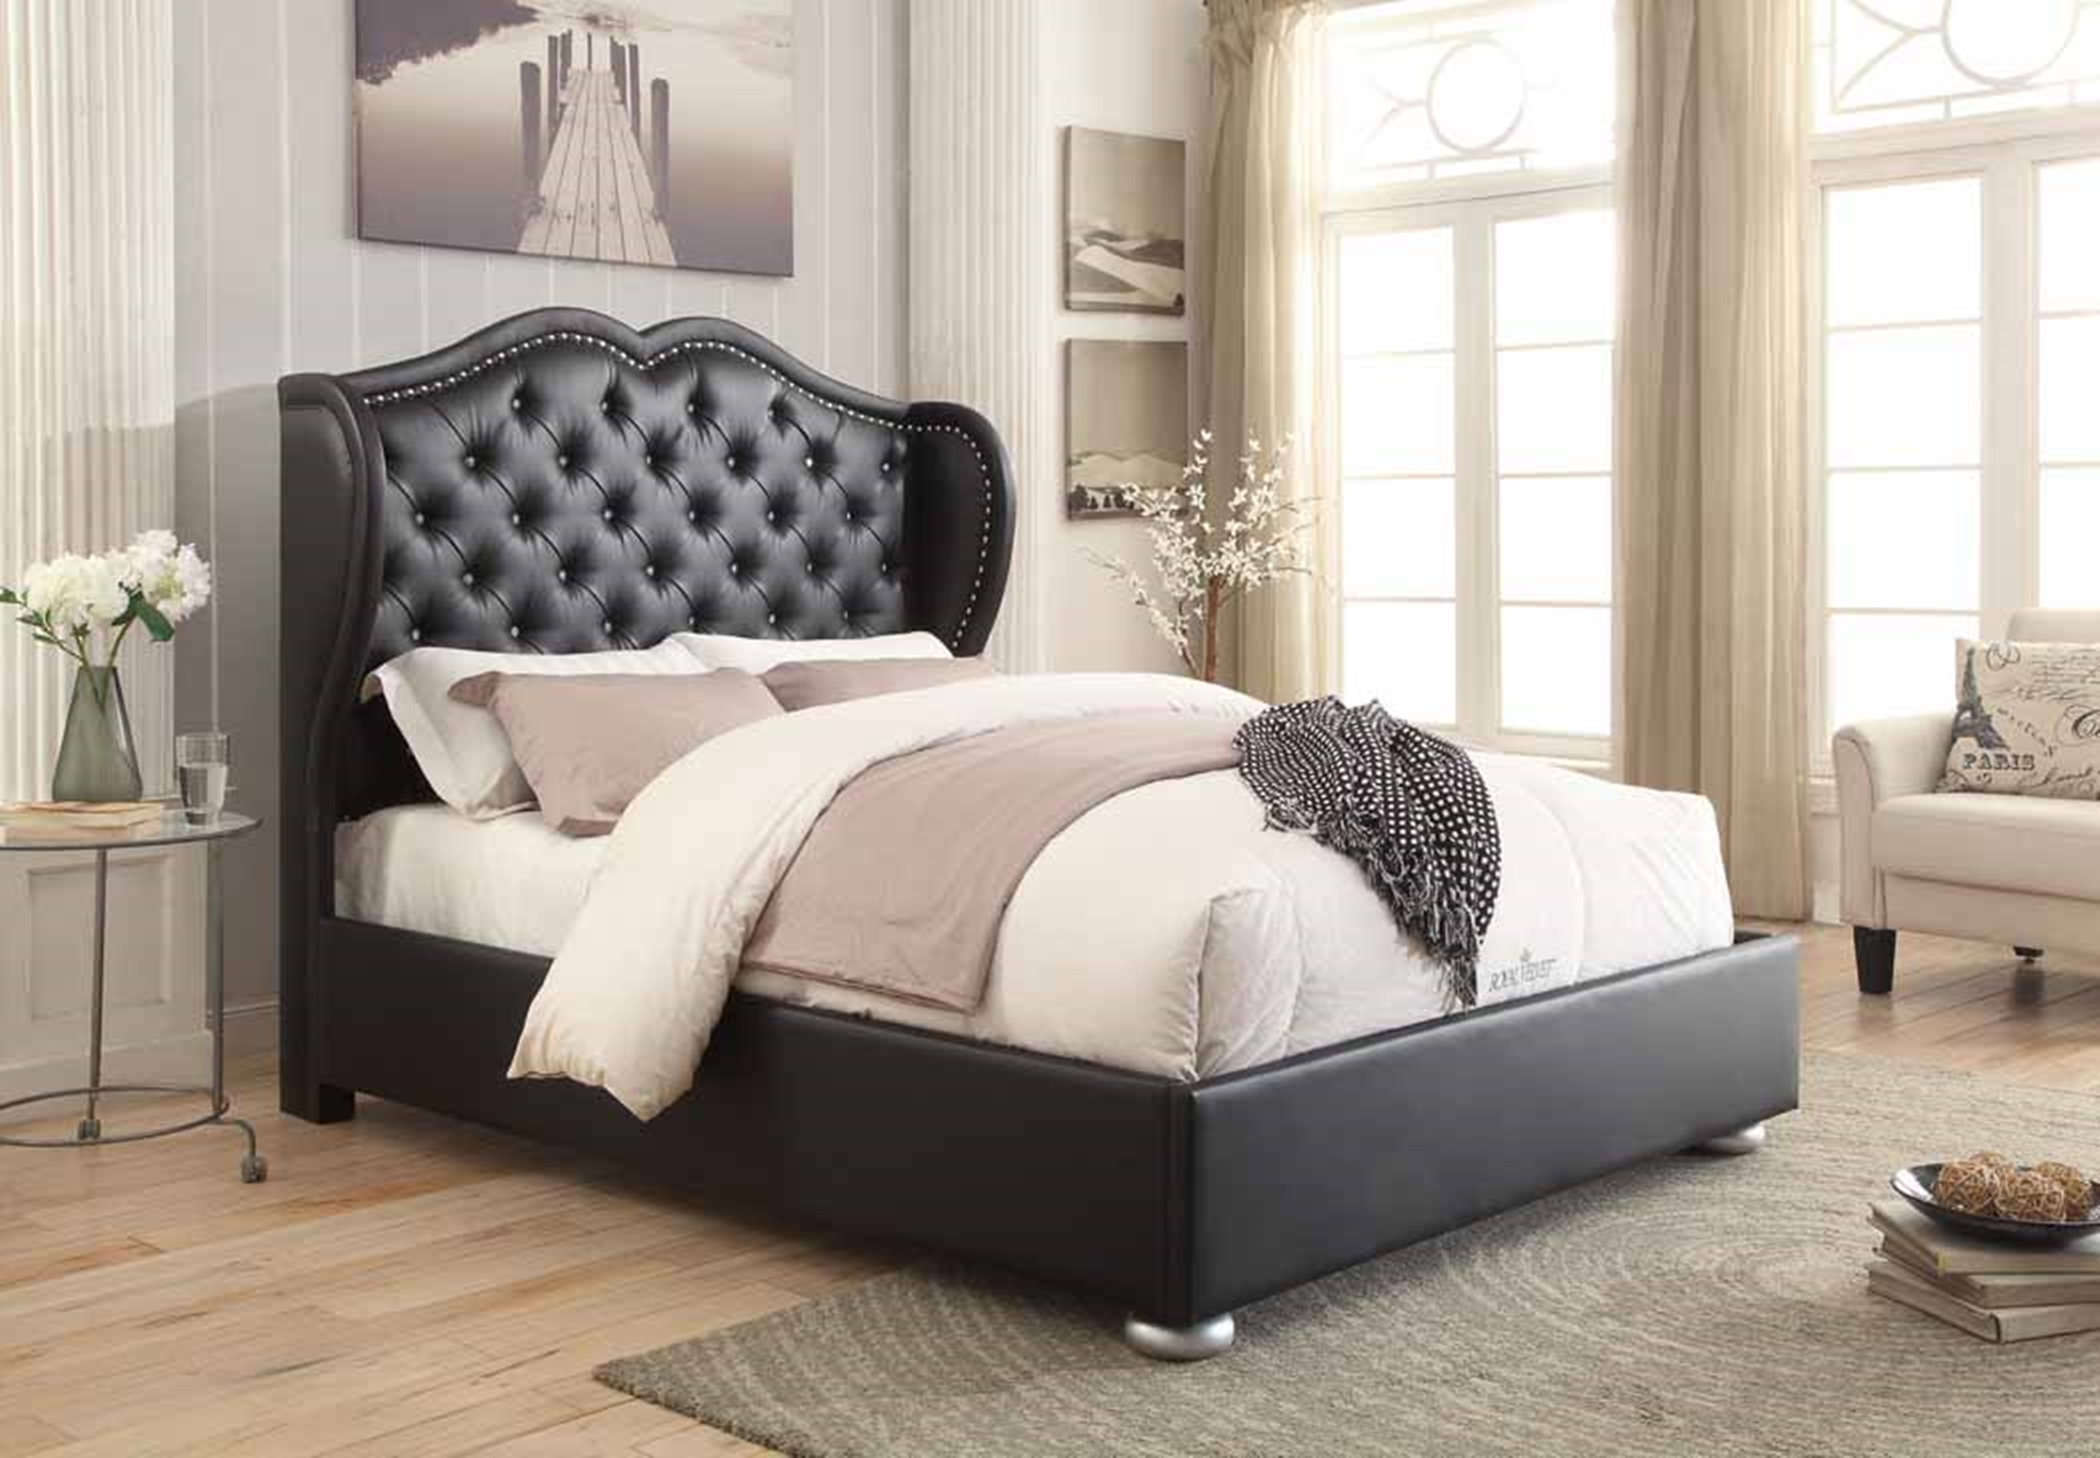 Clarice Black Upholstered Queen Bed